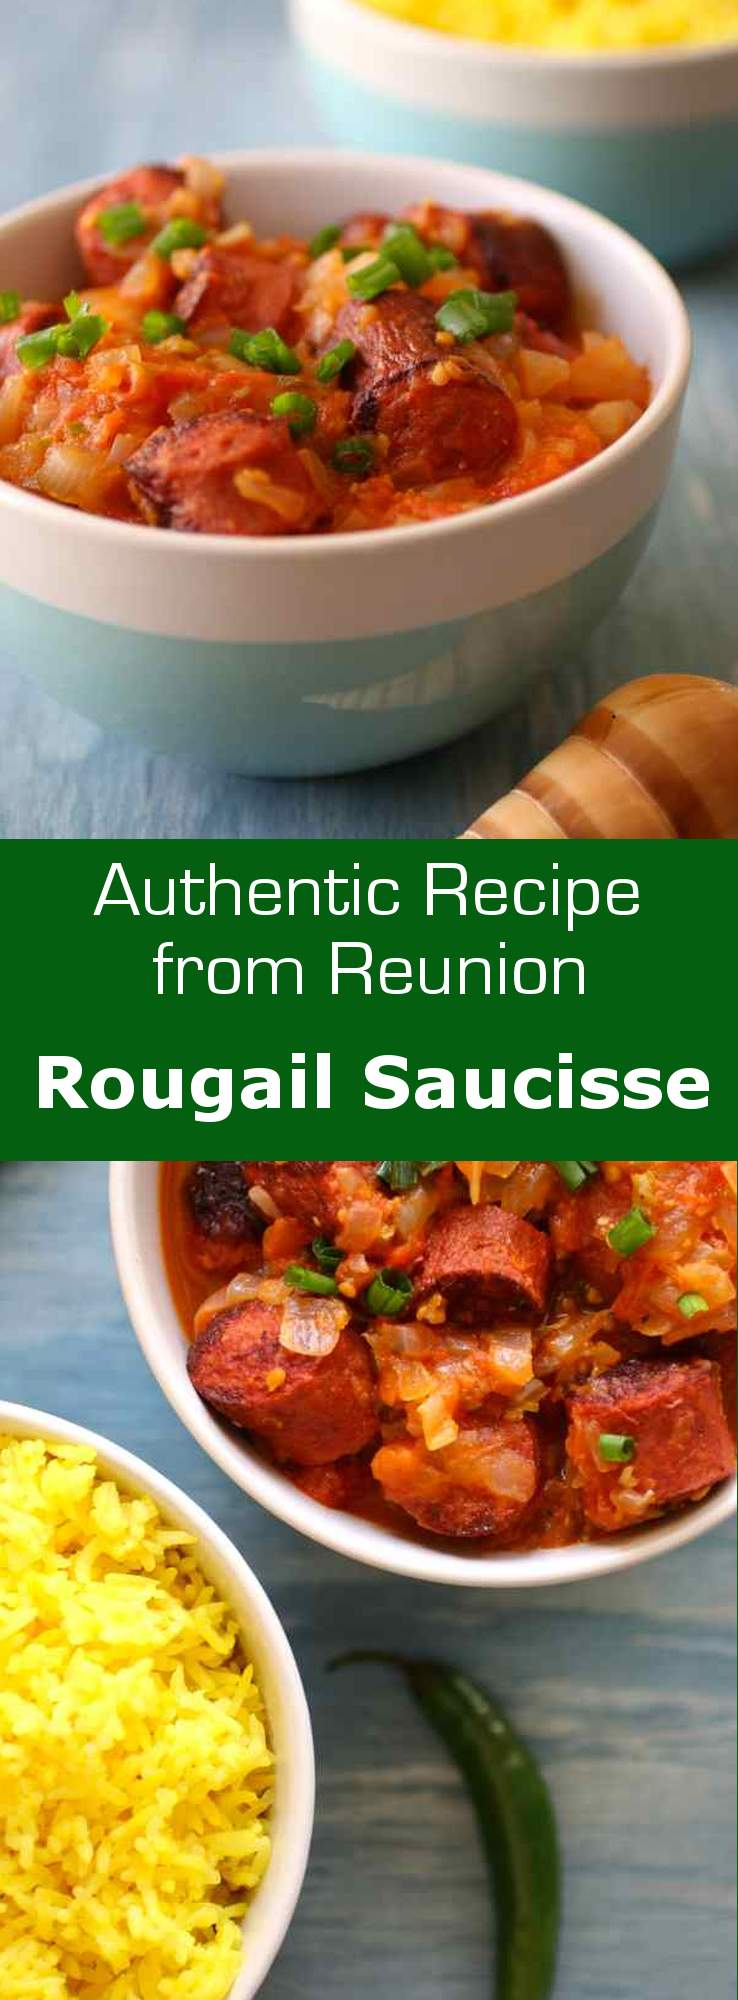 Sausage rougail (rougail saucisse) is a traditional tomato and chili pepper-based dish typically served with rice, very popular in Reunion. #creole #reunion